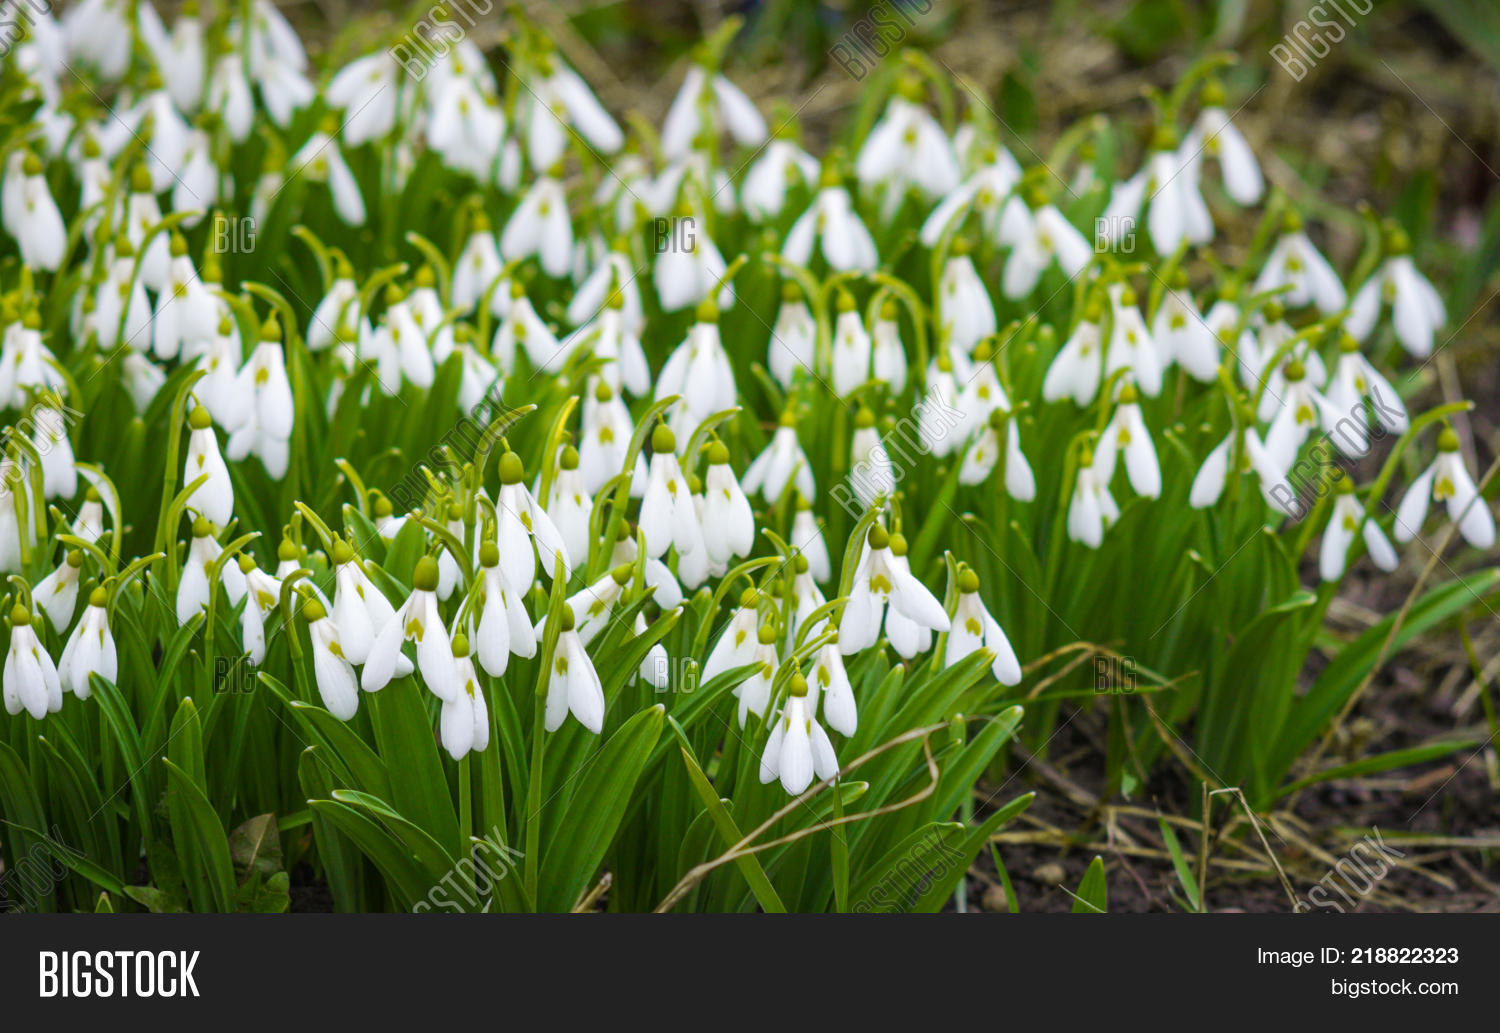 First Flowers Spring Image Photo Free Trial Bigstock